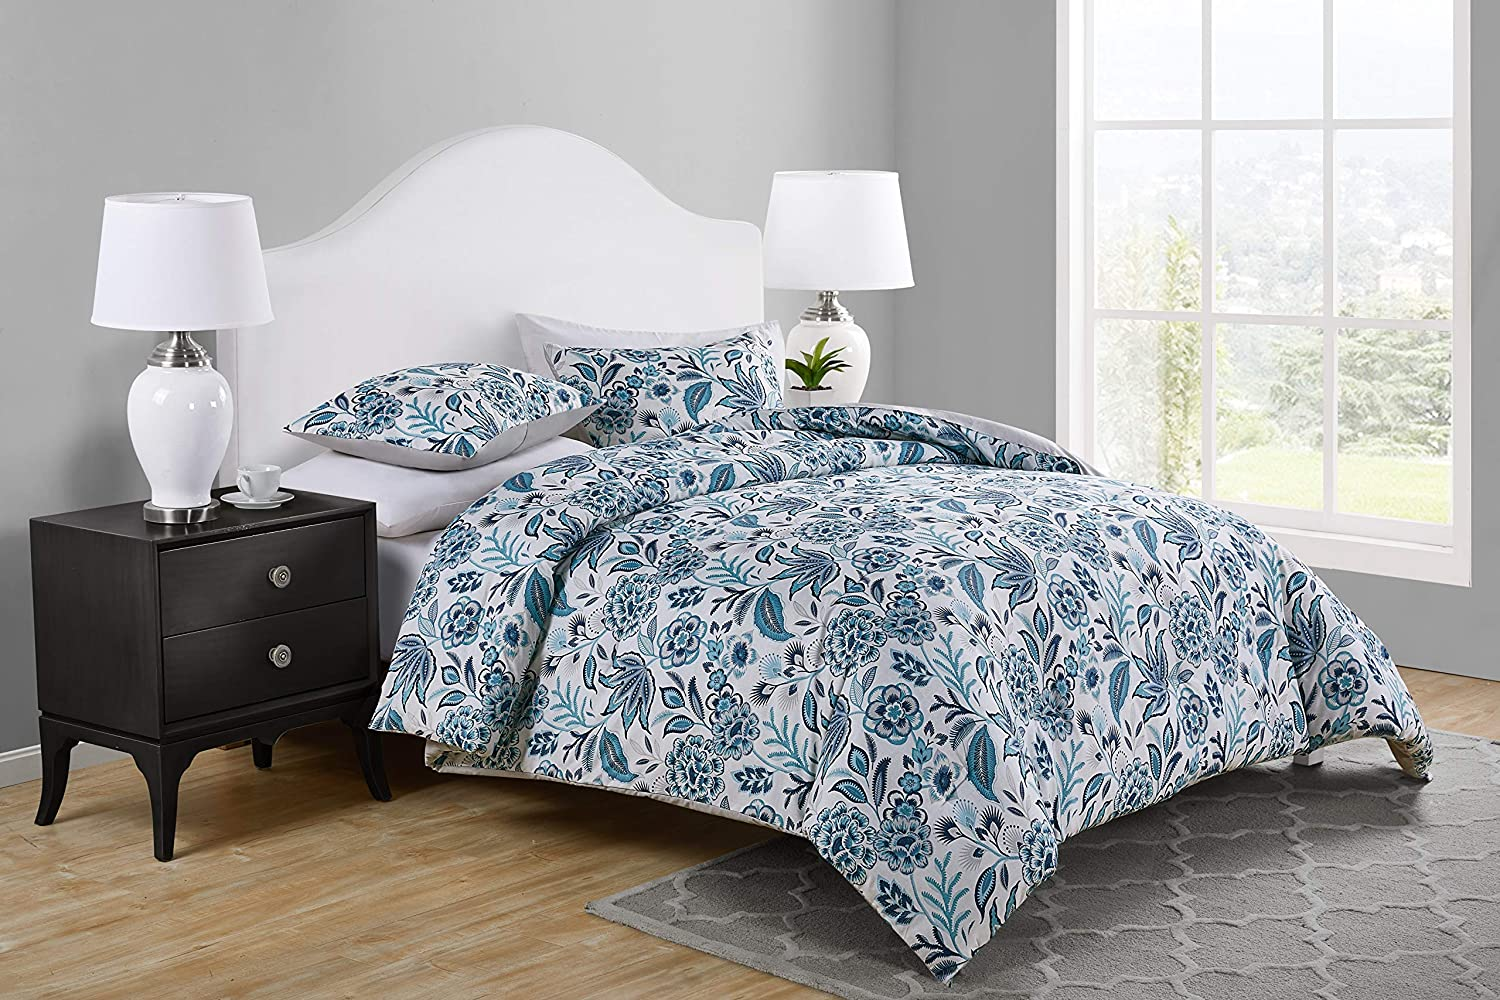 Tahari Home | Val Bedding Collection | Luxury Ultra Soft Comforter, All Season Premium 3 Piece Set, Designed for Home Hotel Décor, Full/Queen, Blue